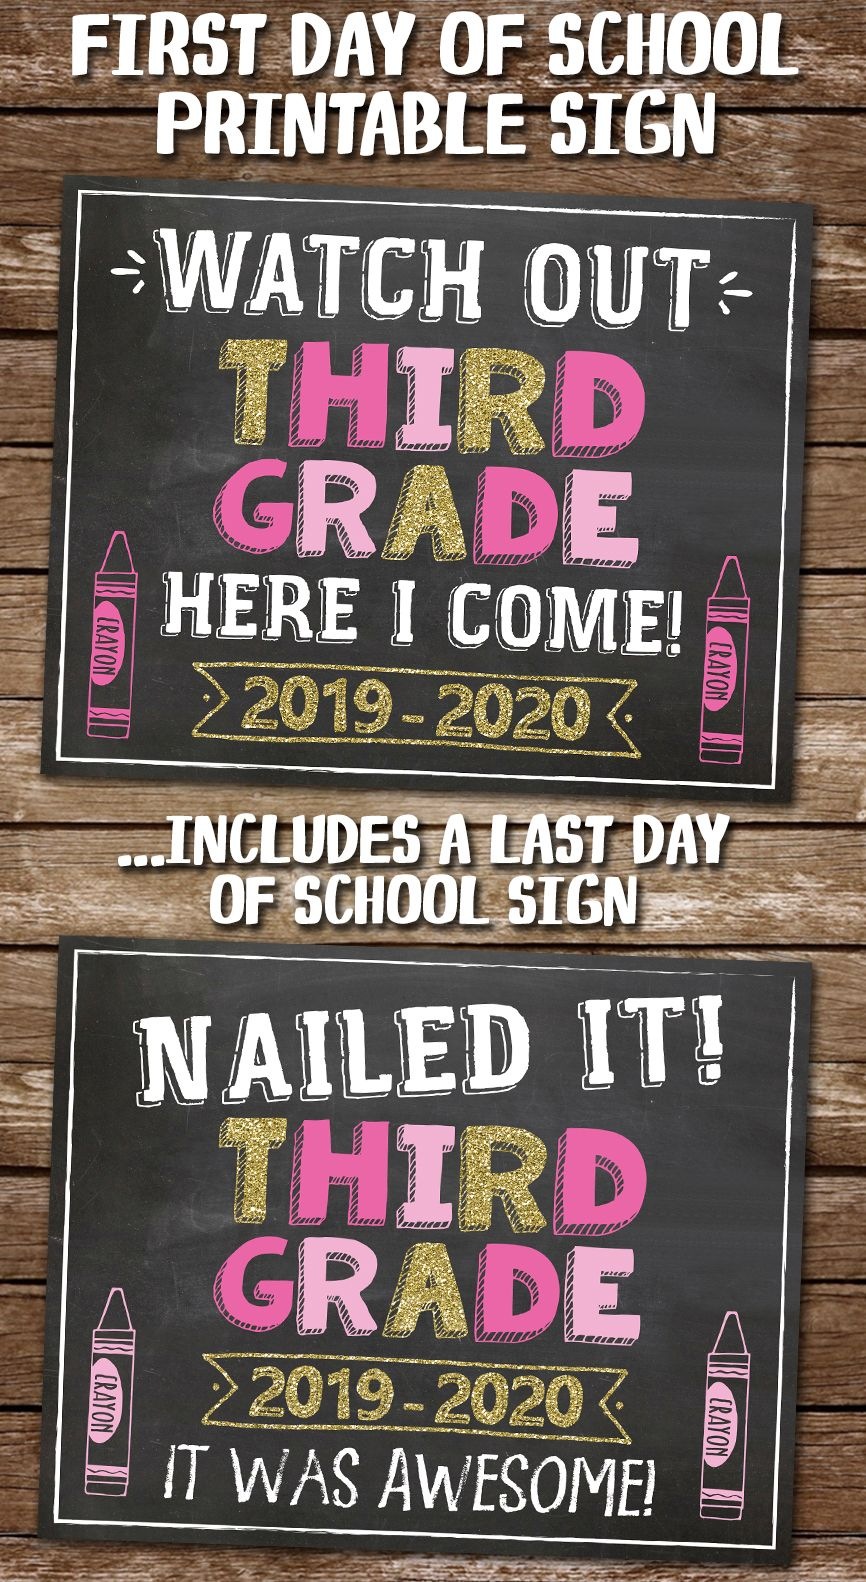 image regarding First Day of 3rd Grade Sign Printable referred to as 1st Working day of 3rd Quality Printable Chalkboard Indicator for Lady inside of